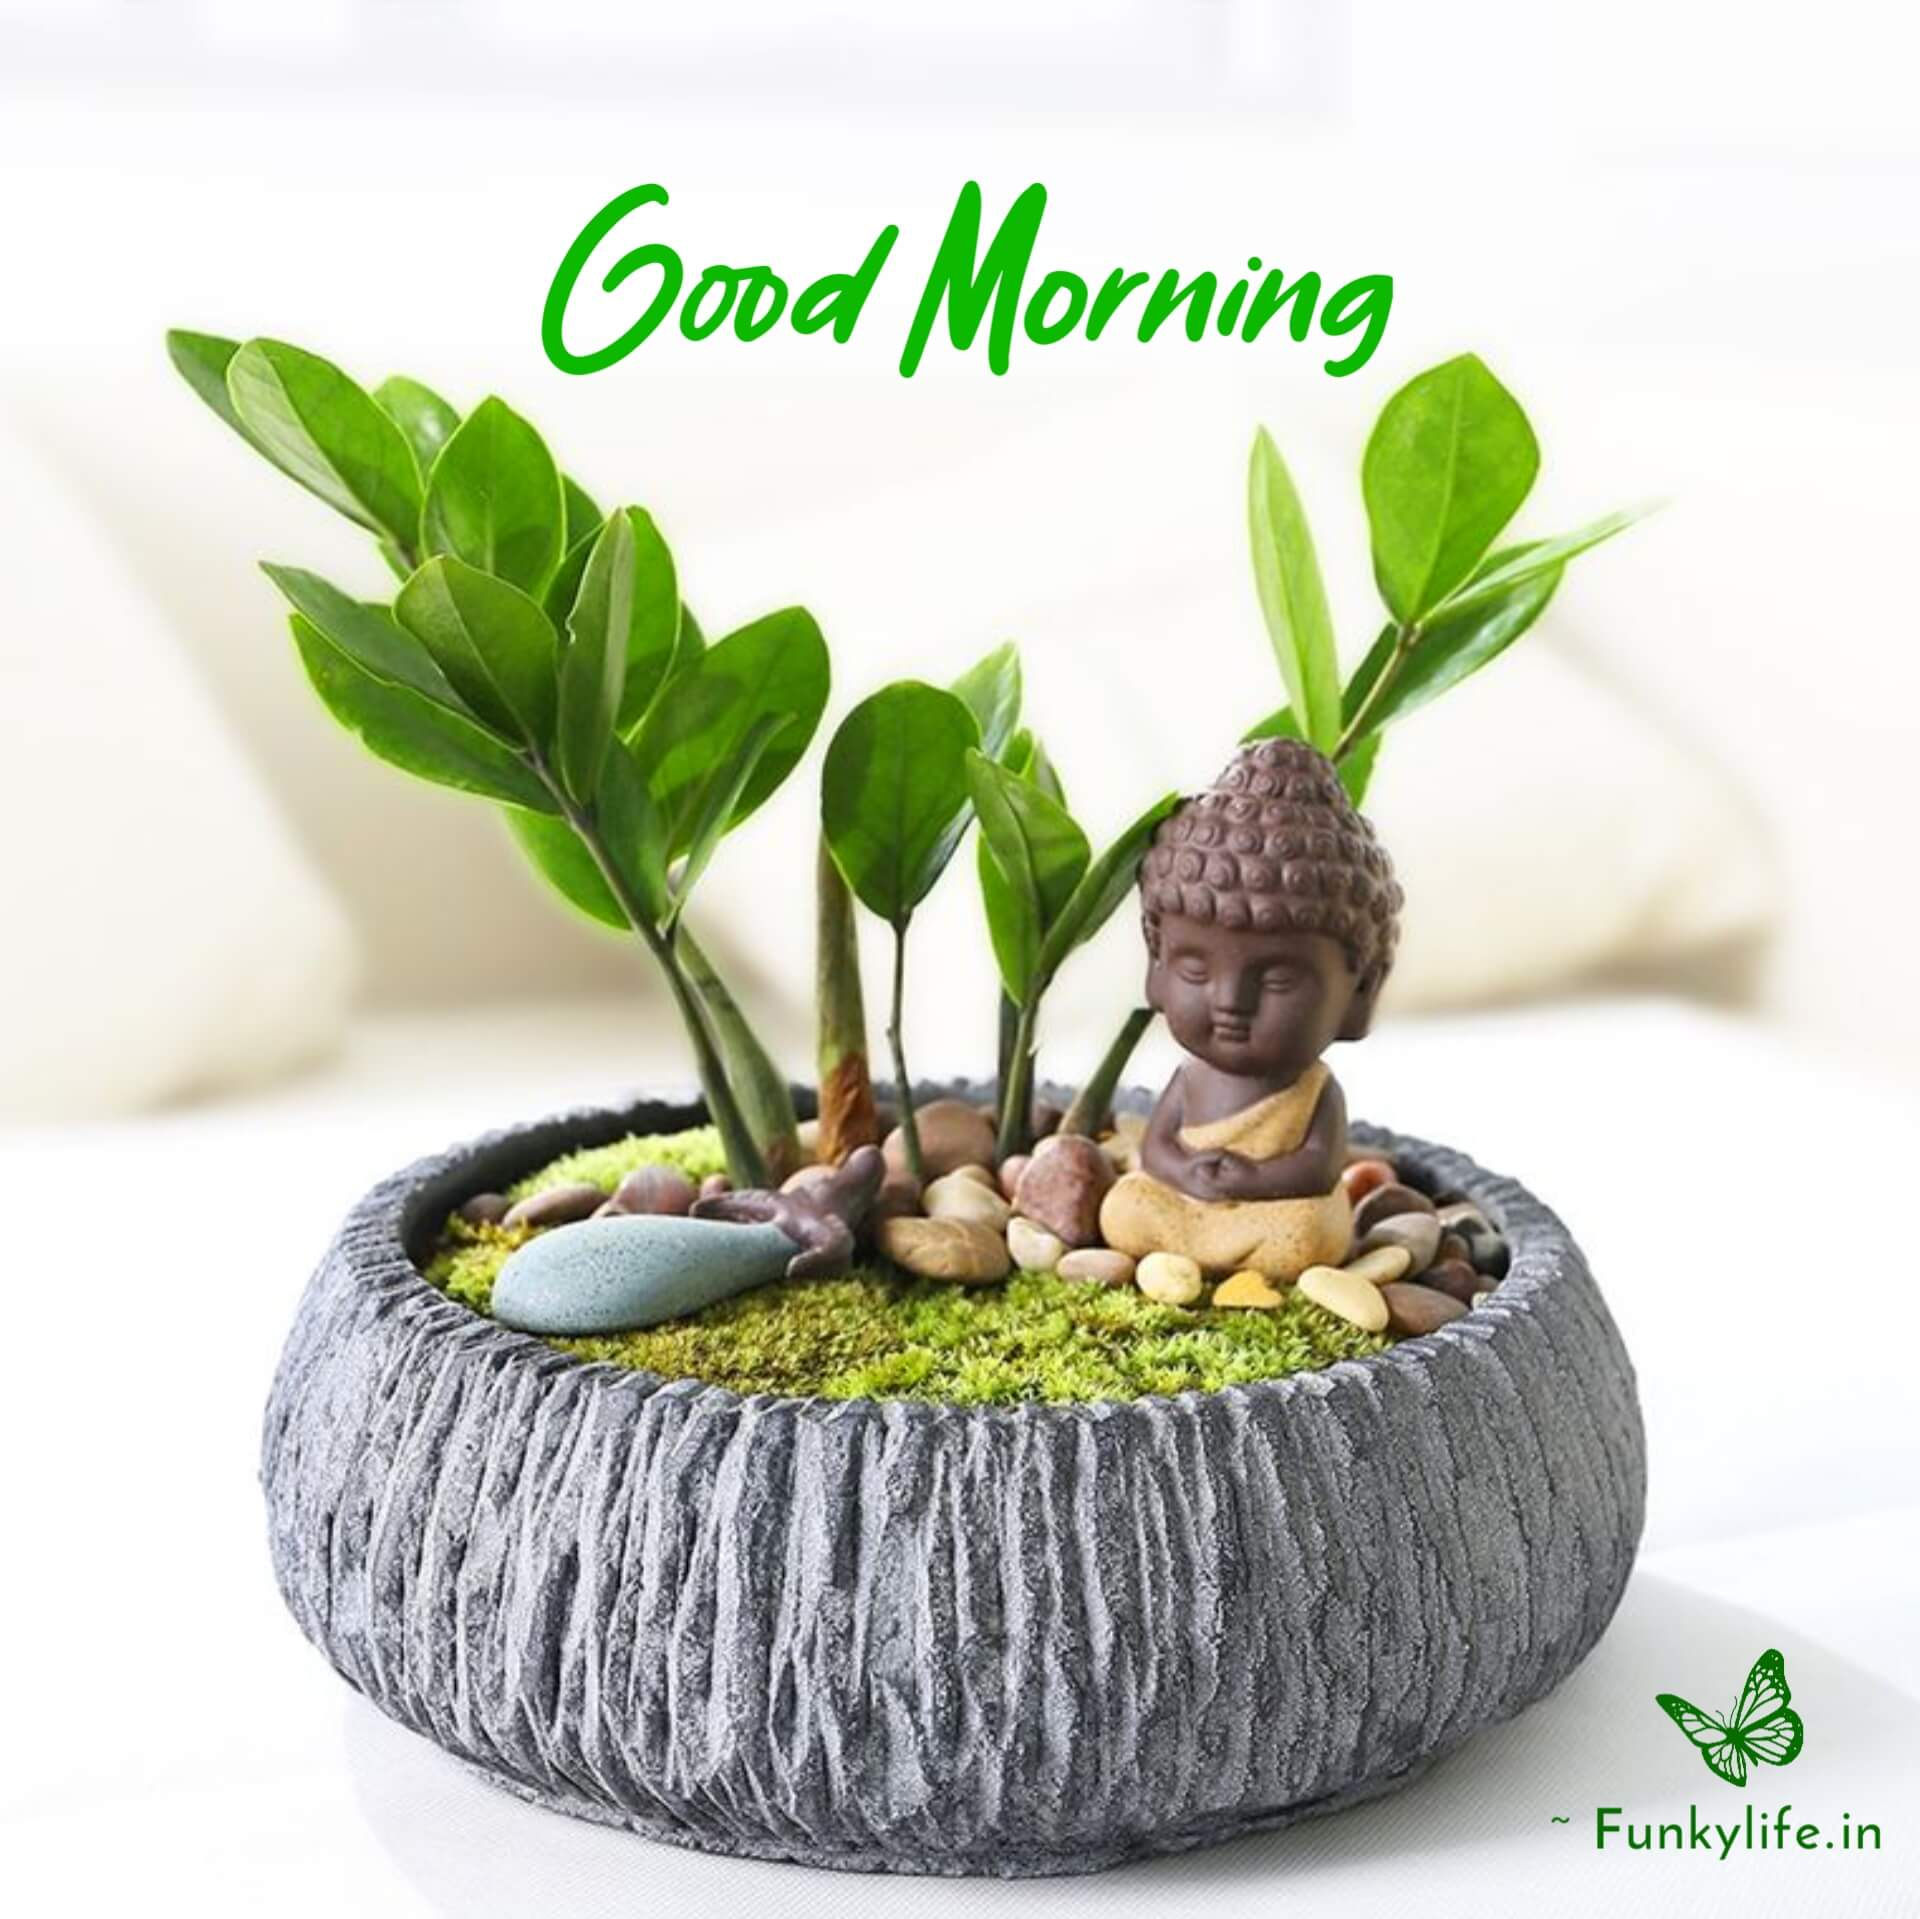 Good Morning Images with Buddha